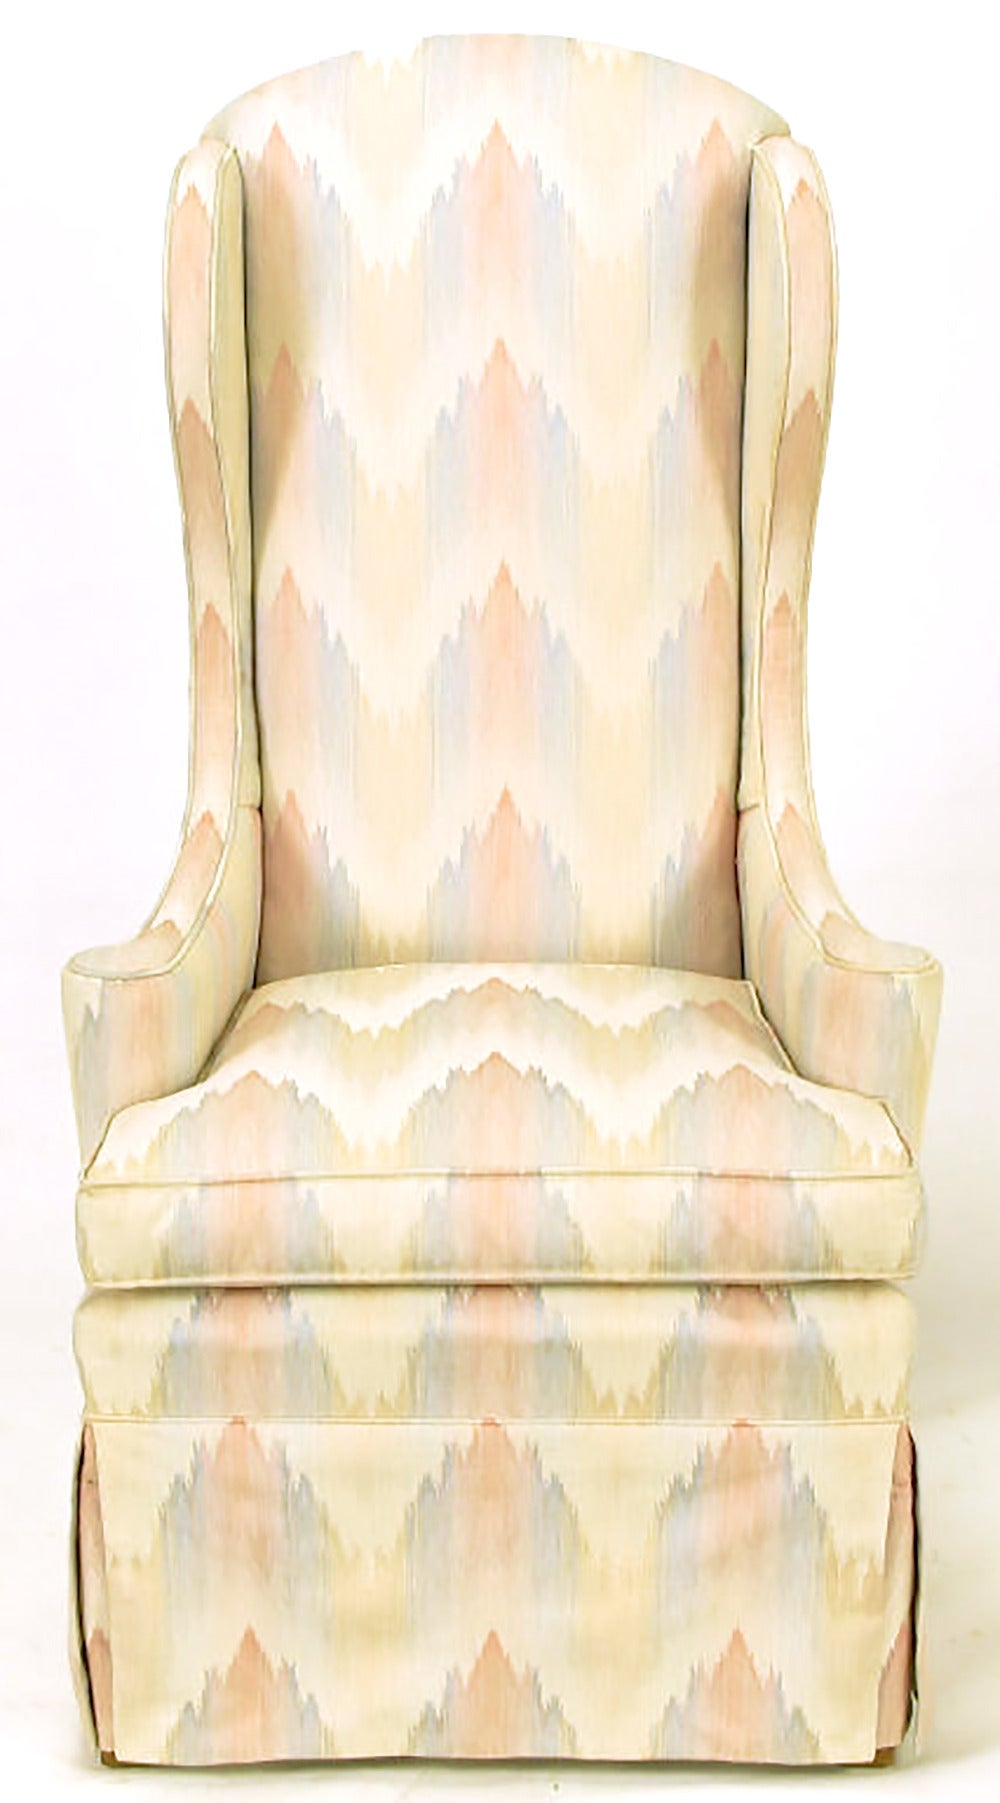 Pair of elegant wing chairs upholstered in a muted lavender, blush and cream flame stitch silk blend. Narrow and arched top back, slight rake in profile and low slung out turned arms lend updated appeal to the Classic wingback chair. Currently